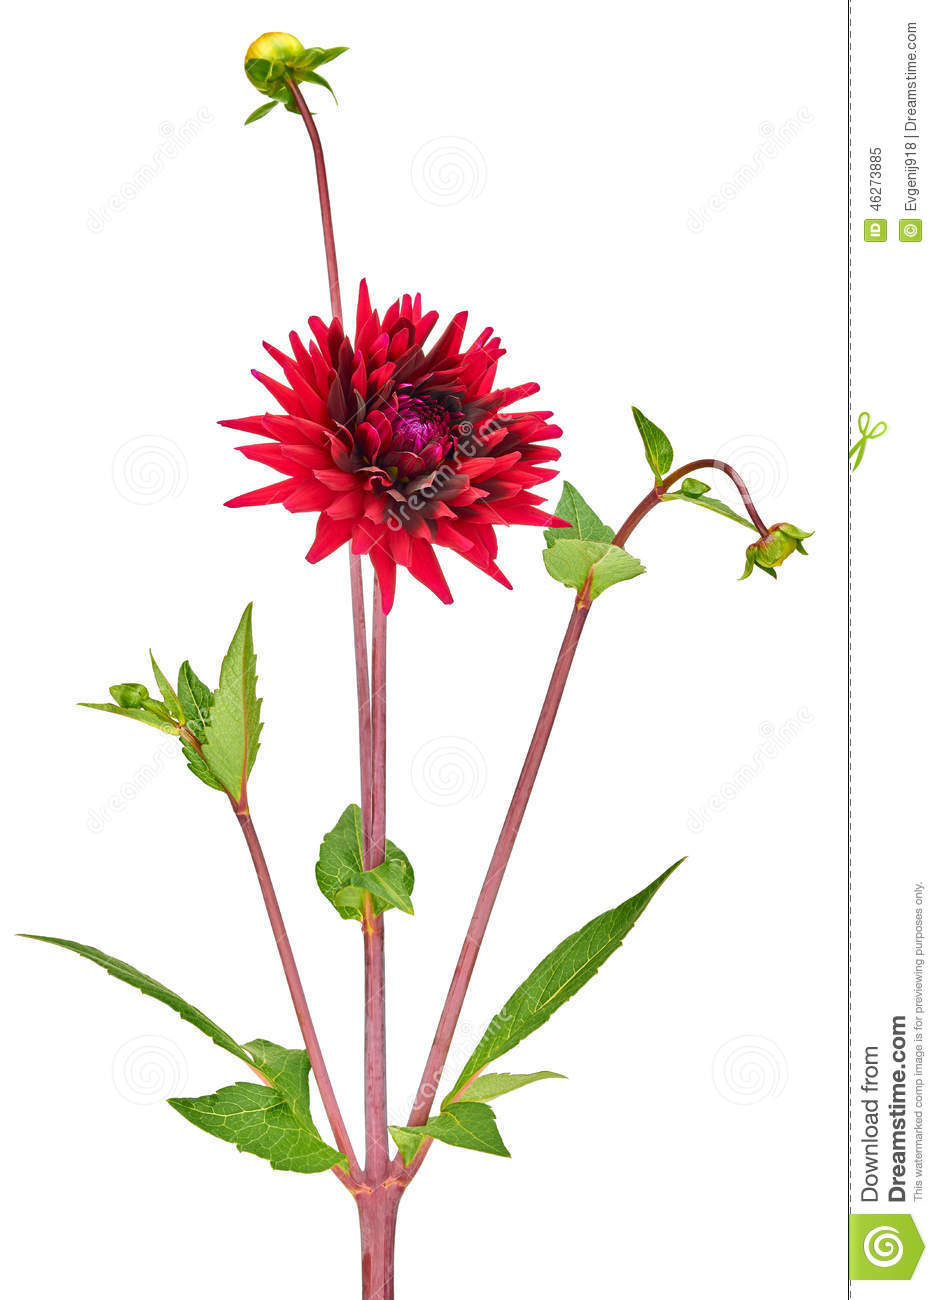 Dahlia red colored flower with green stem and leaf stock image dahlia red colored flower with green stem and leaf izmirmasajfo